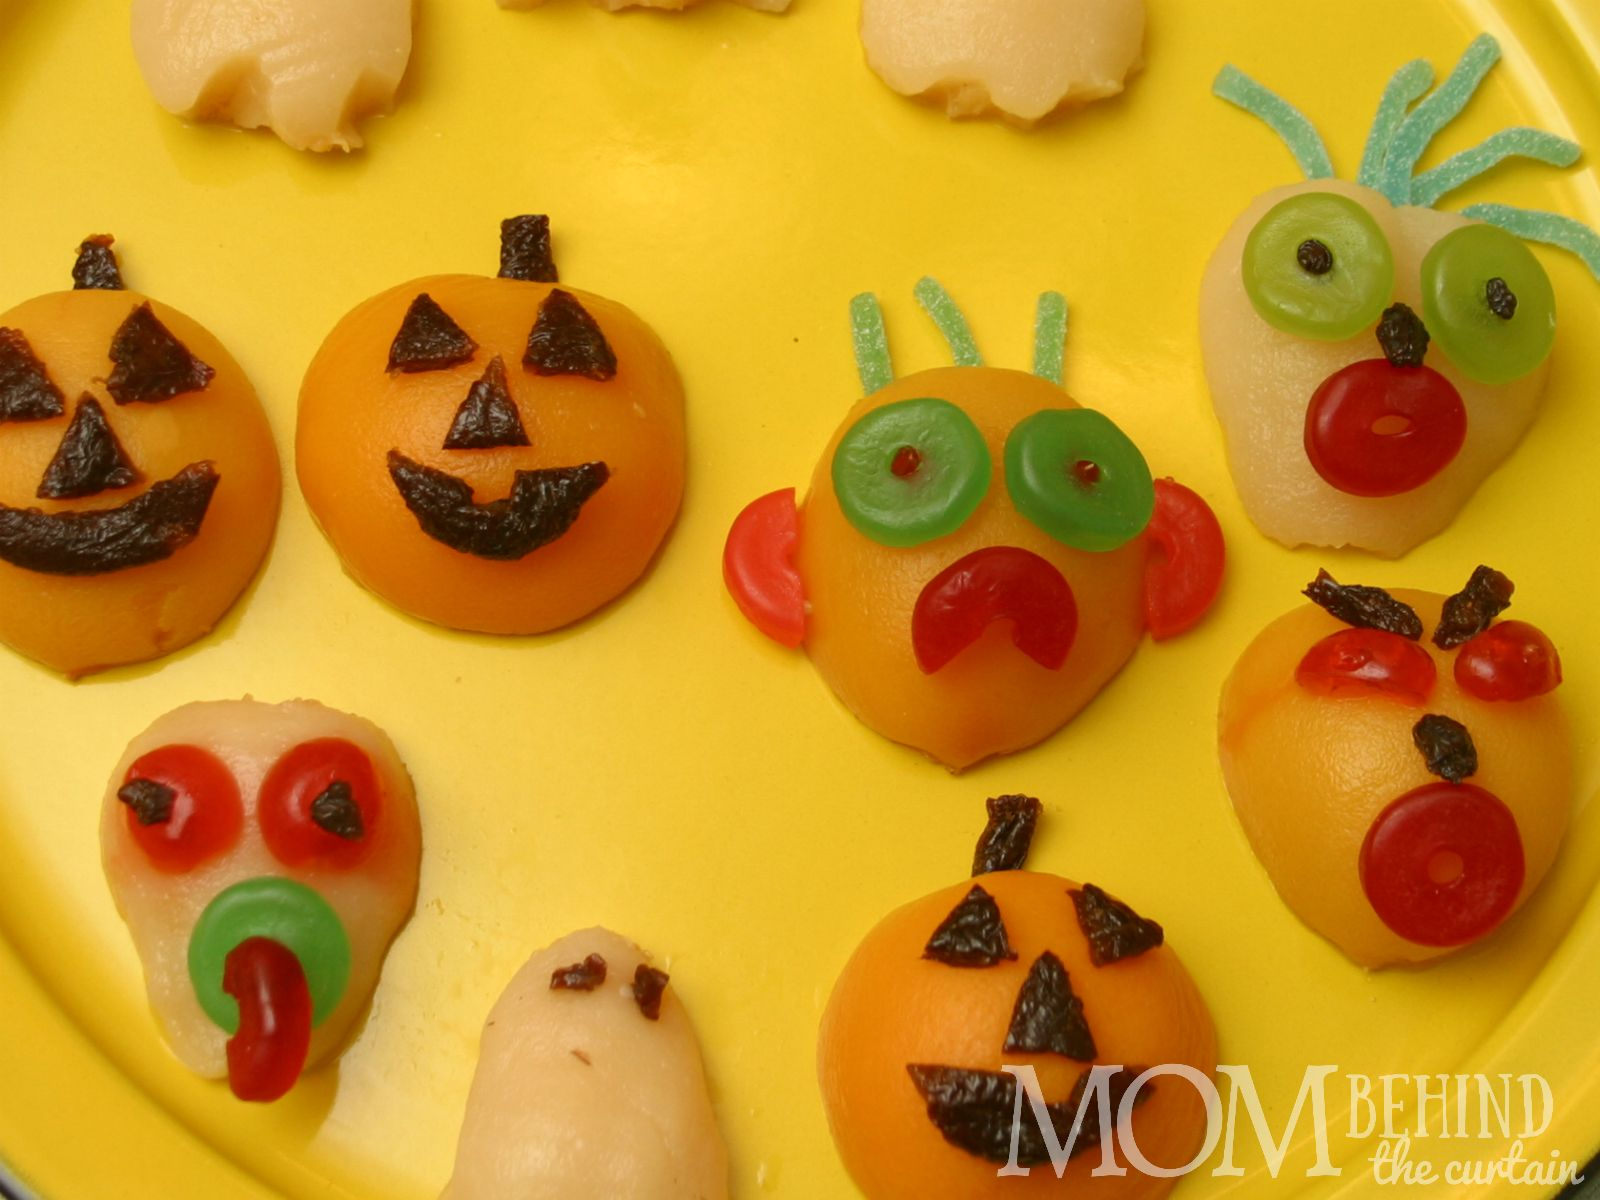 Halloween fruit tray - my kids love eating this fruit decorated like little goblins. The ghosts and ghosts are 100% fruit. My kids really have fun helping decorate the monster faces. There's a trick to getting all the face pieces to stick!